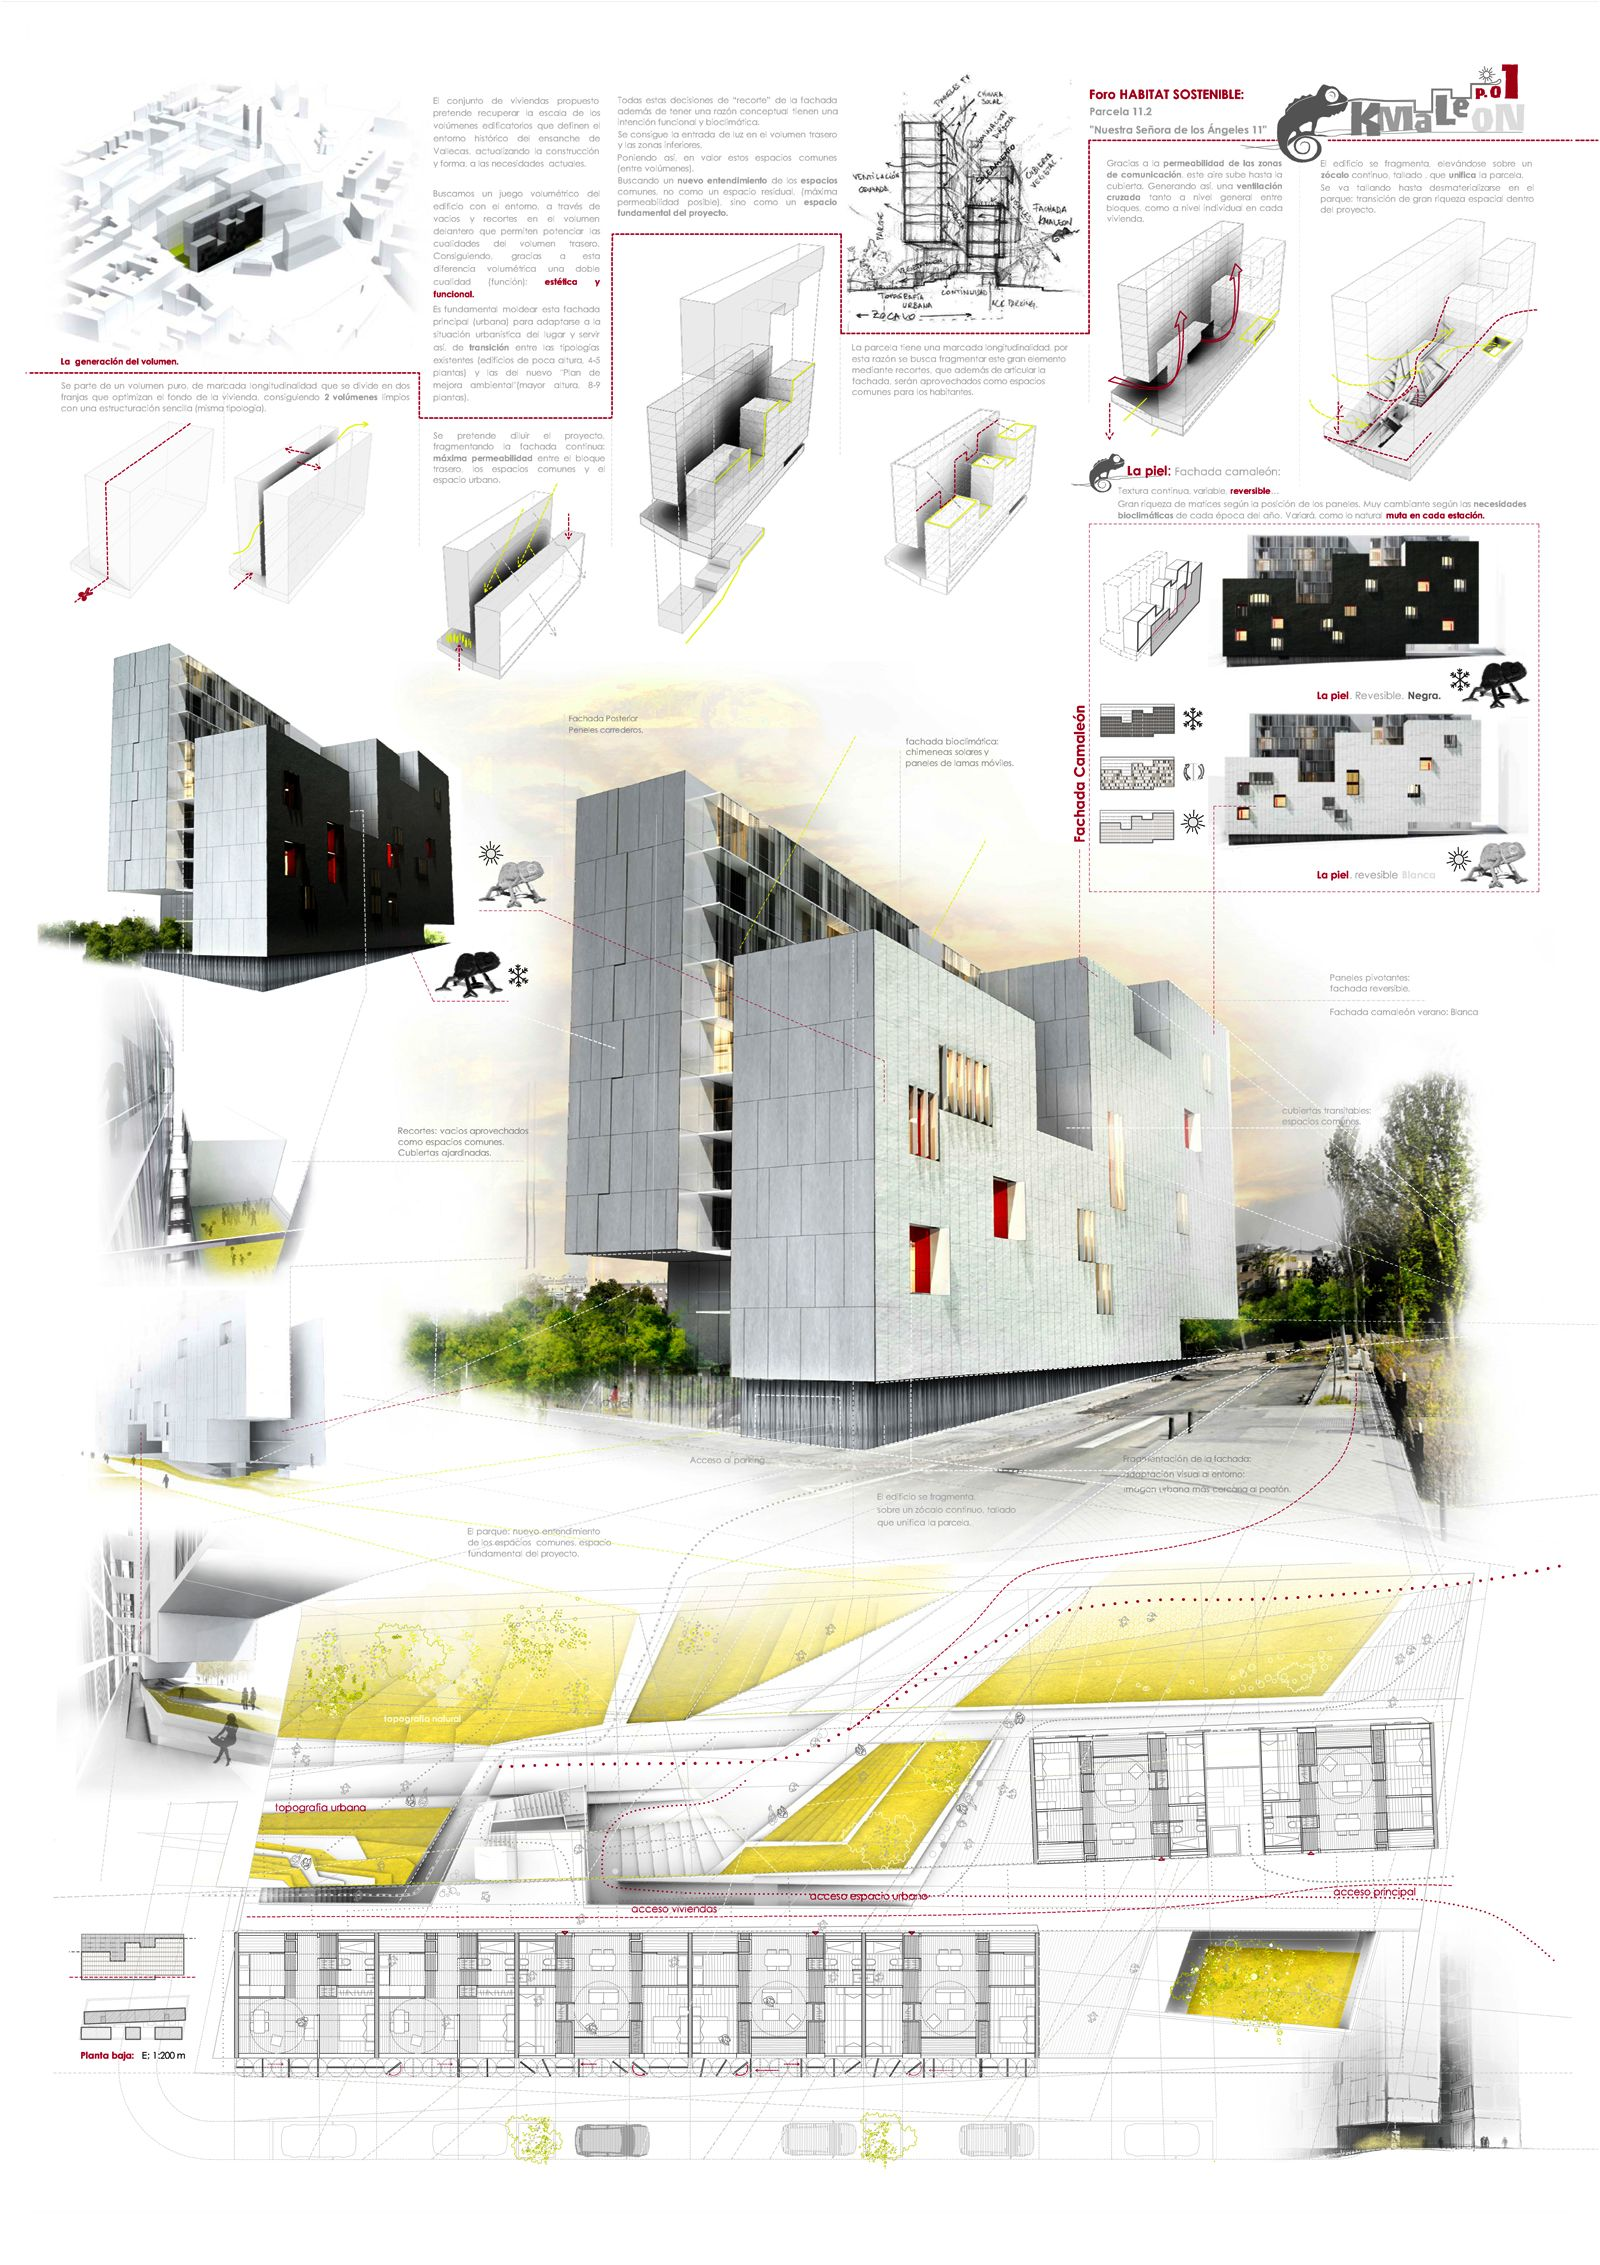 Kmaleon gea presenting architecture pinterest architecture architectural presentation - The house of clicks the visual experiment of swedish architects ...